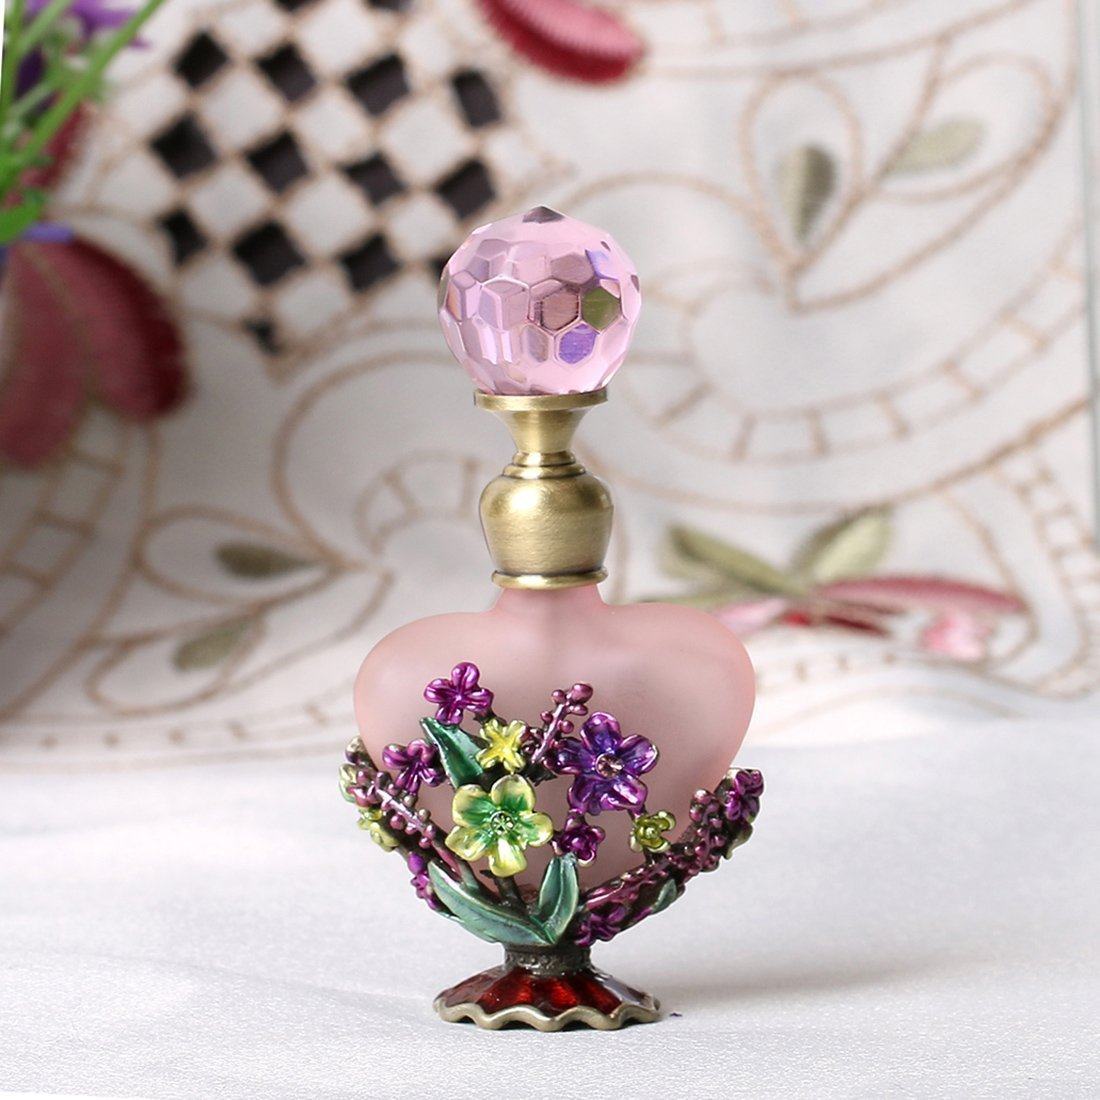 H&D Vintage Magical Violet Refillable Empty Crystal Perfume Bottle Handmade Home Decor Lady Wedding Gift 3